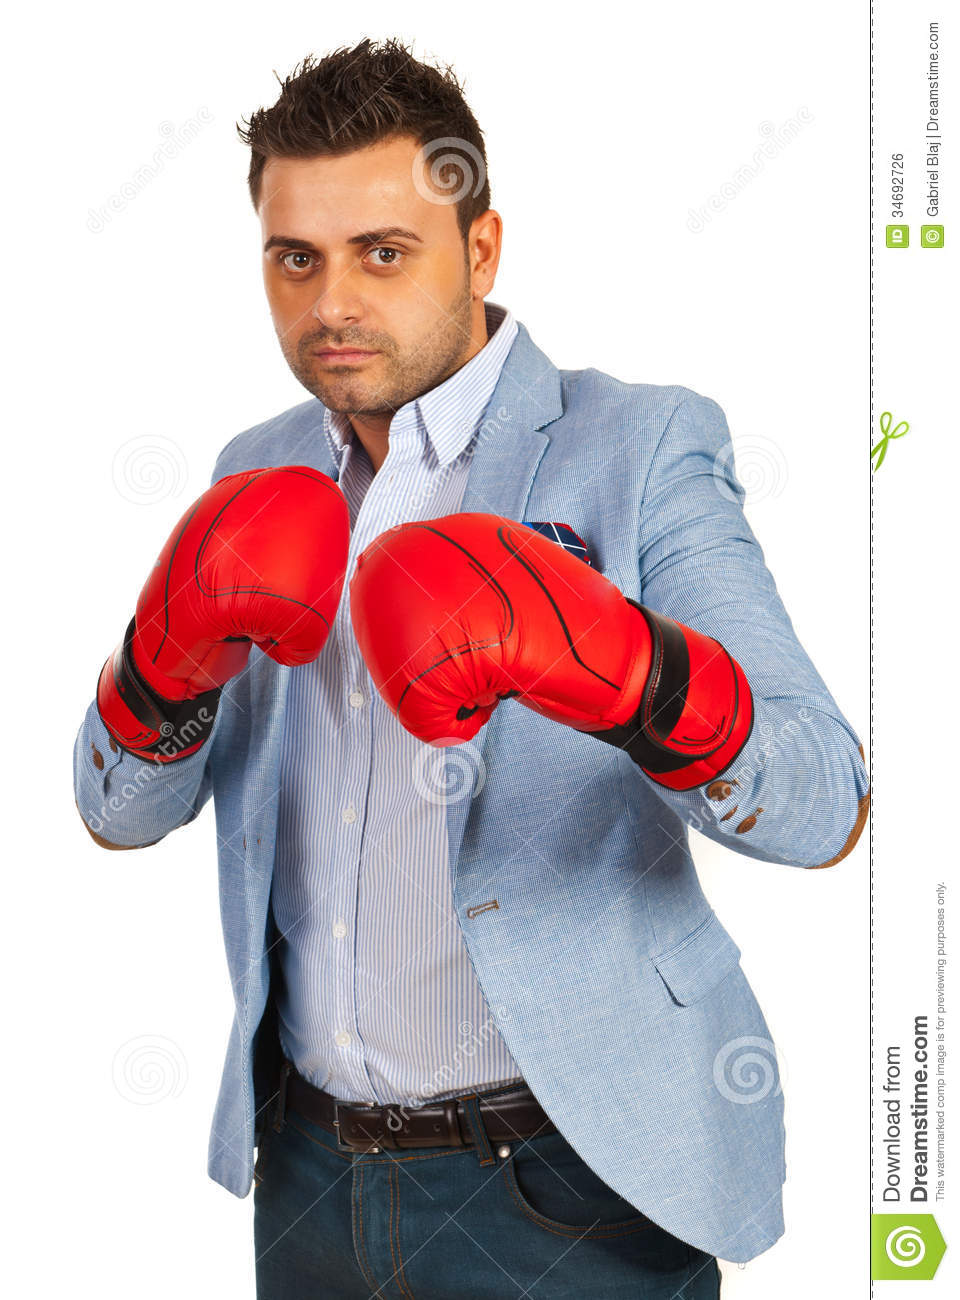 Boxing Gloves Man Wiring Diagrams With Linearregulator Current Source Circuit Diagram Tradeoficcom Business Stock Photo Image Of Businessman Rh Dreamstime Com Mini